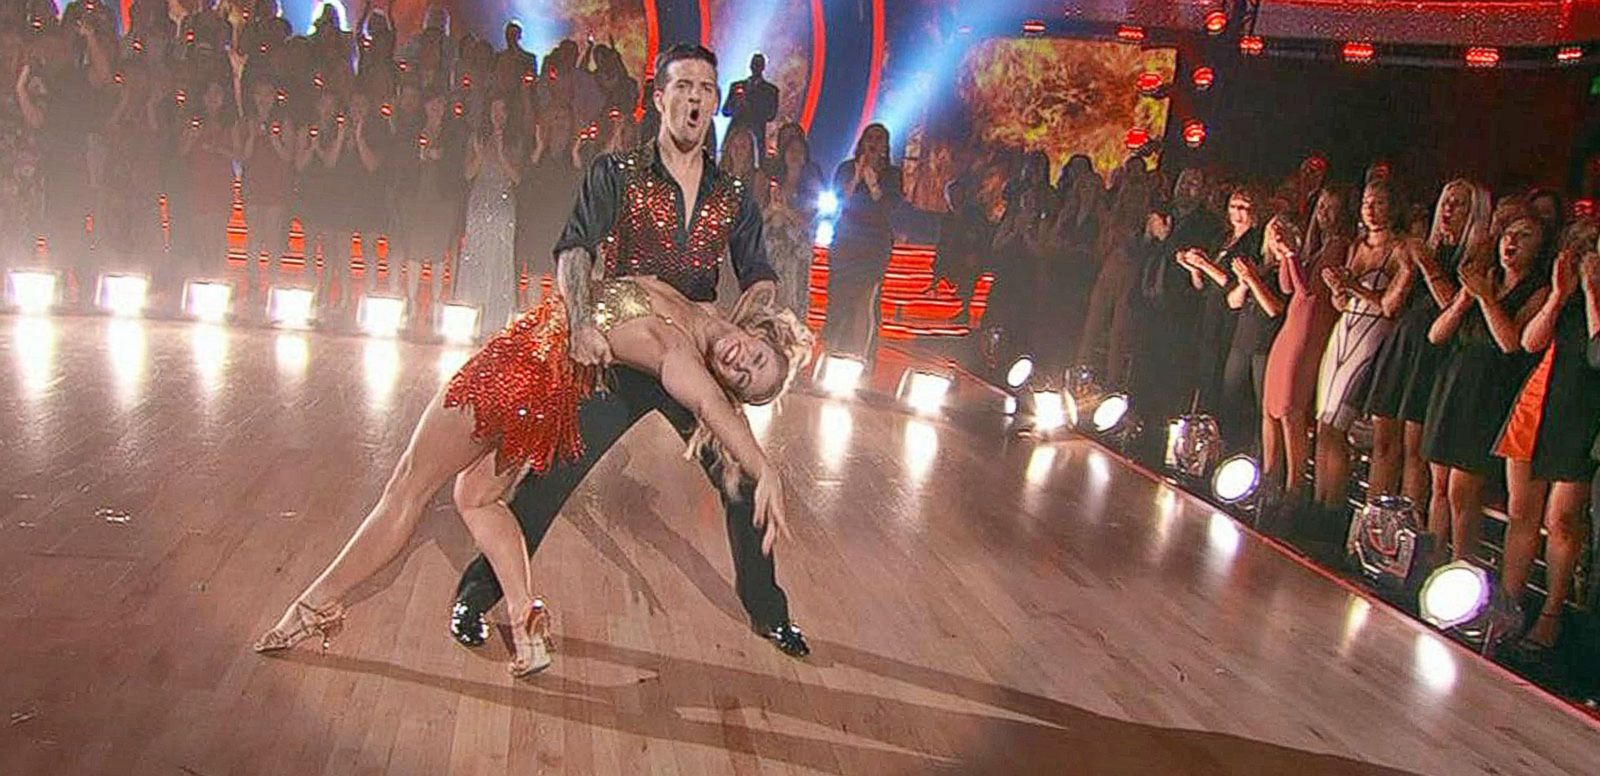 VIDEO: 'DWTS' Finale: Which Star Wowed the Freestyle?